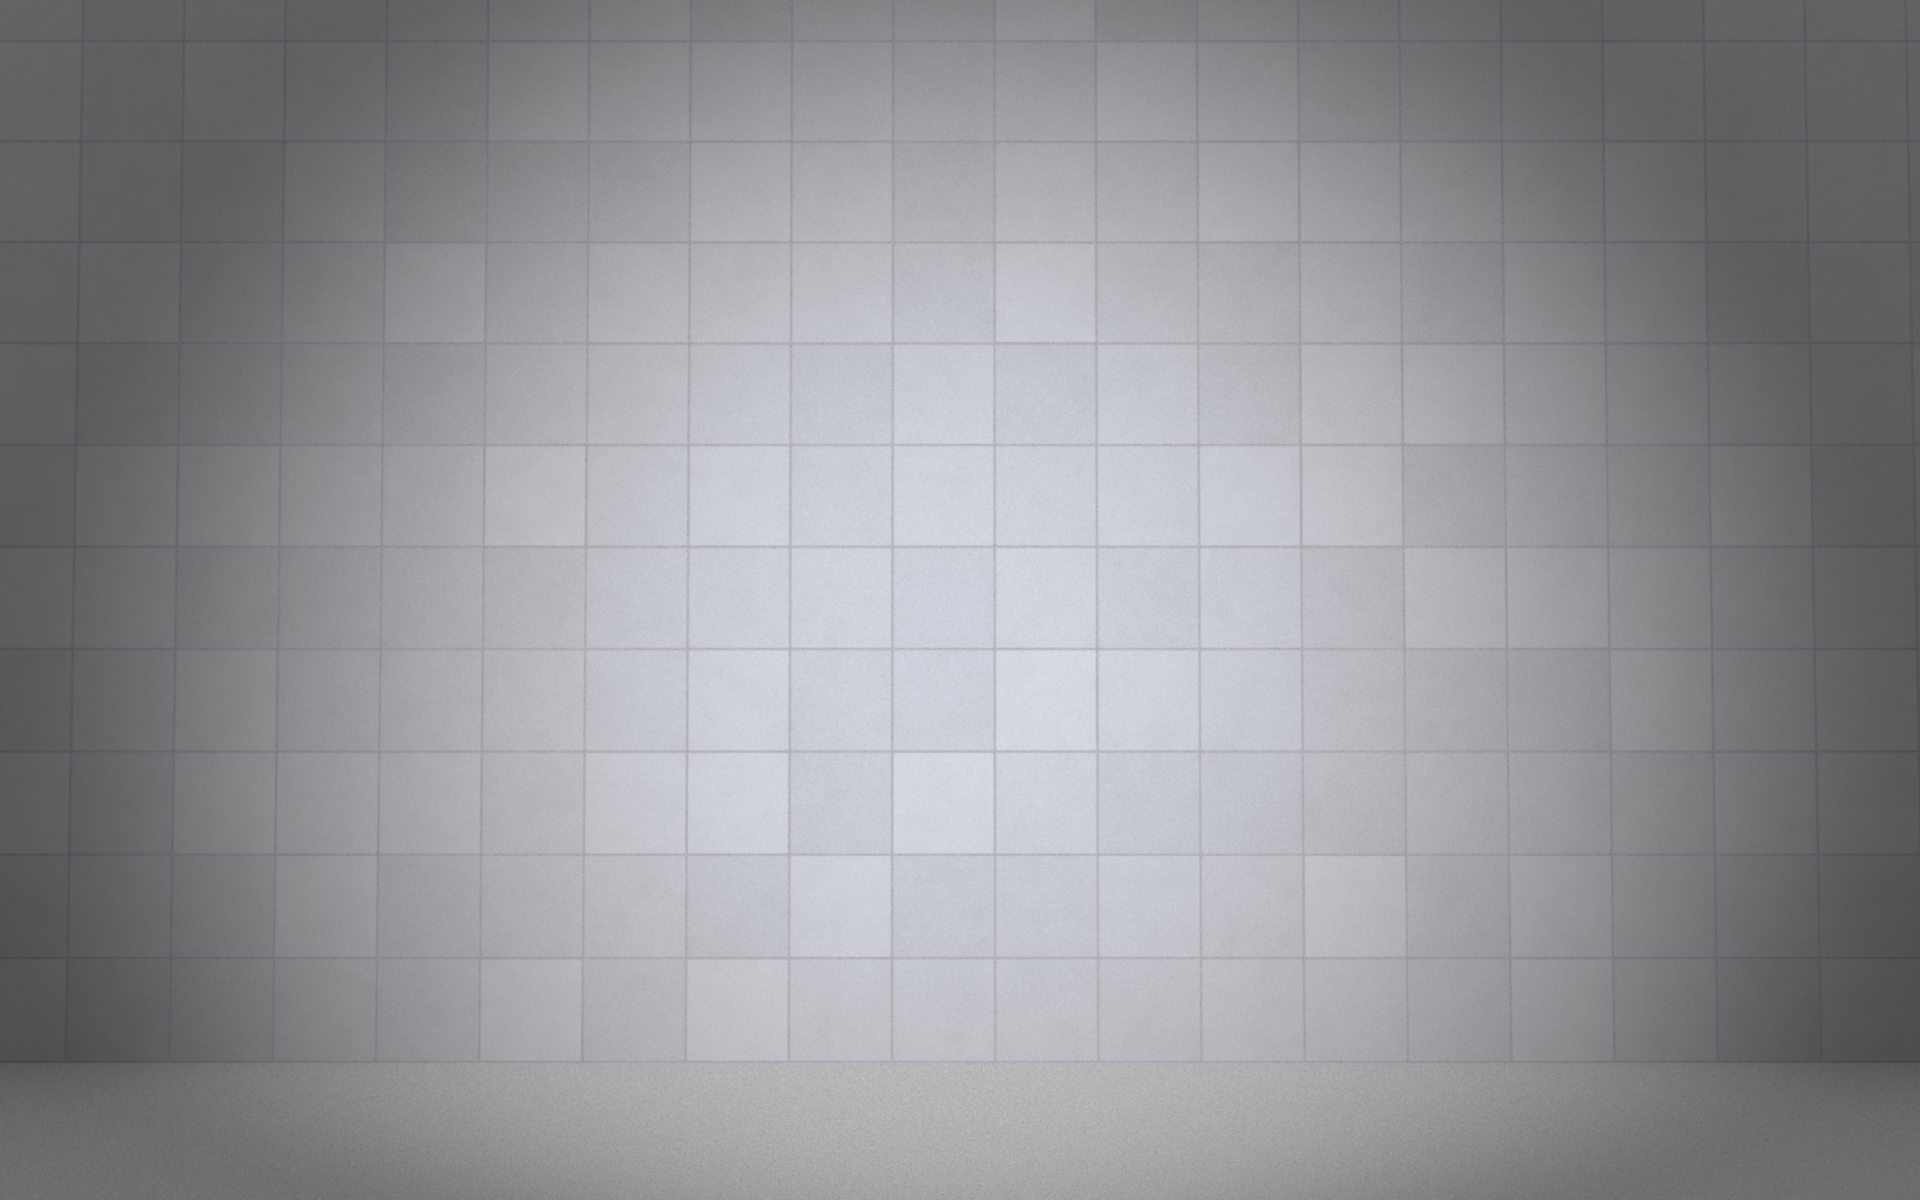 Square Pattern   High Quality Image   Free Download